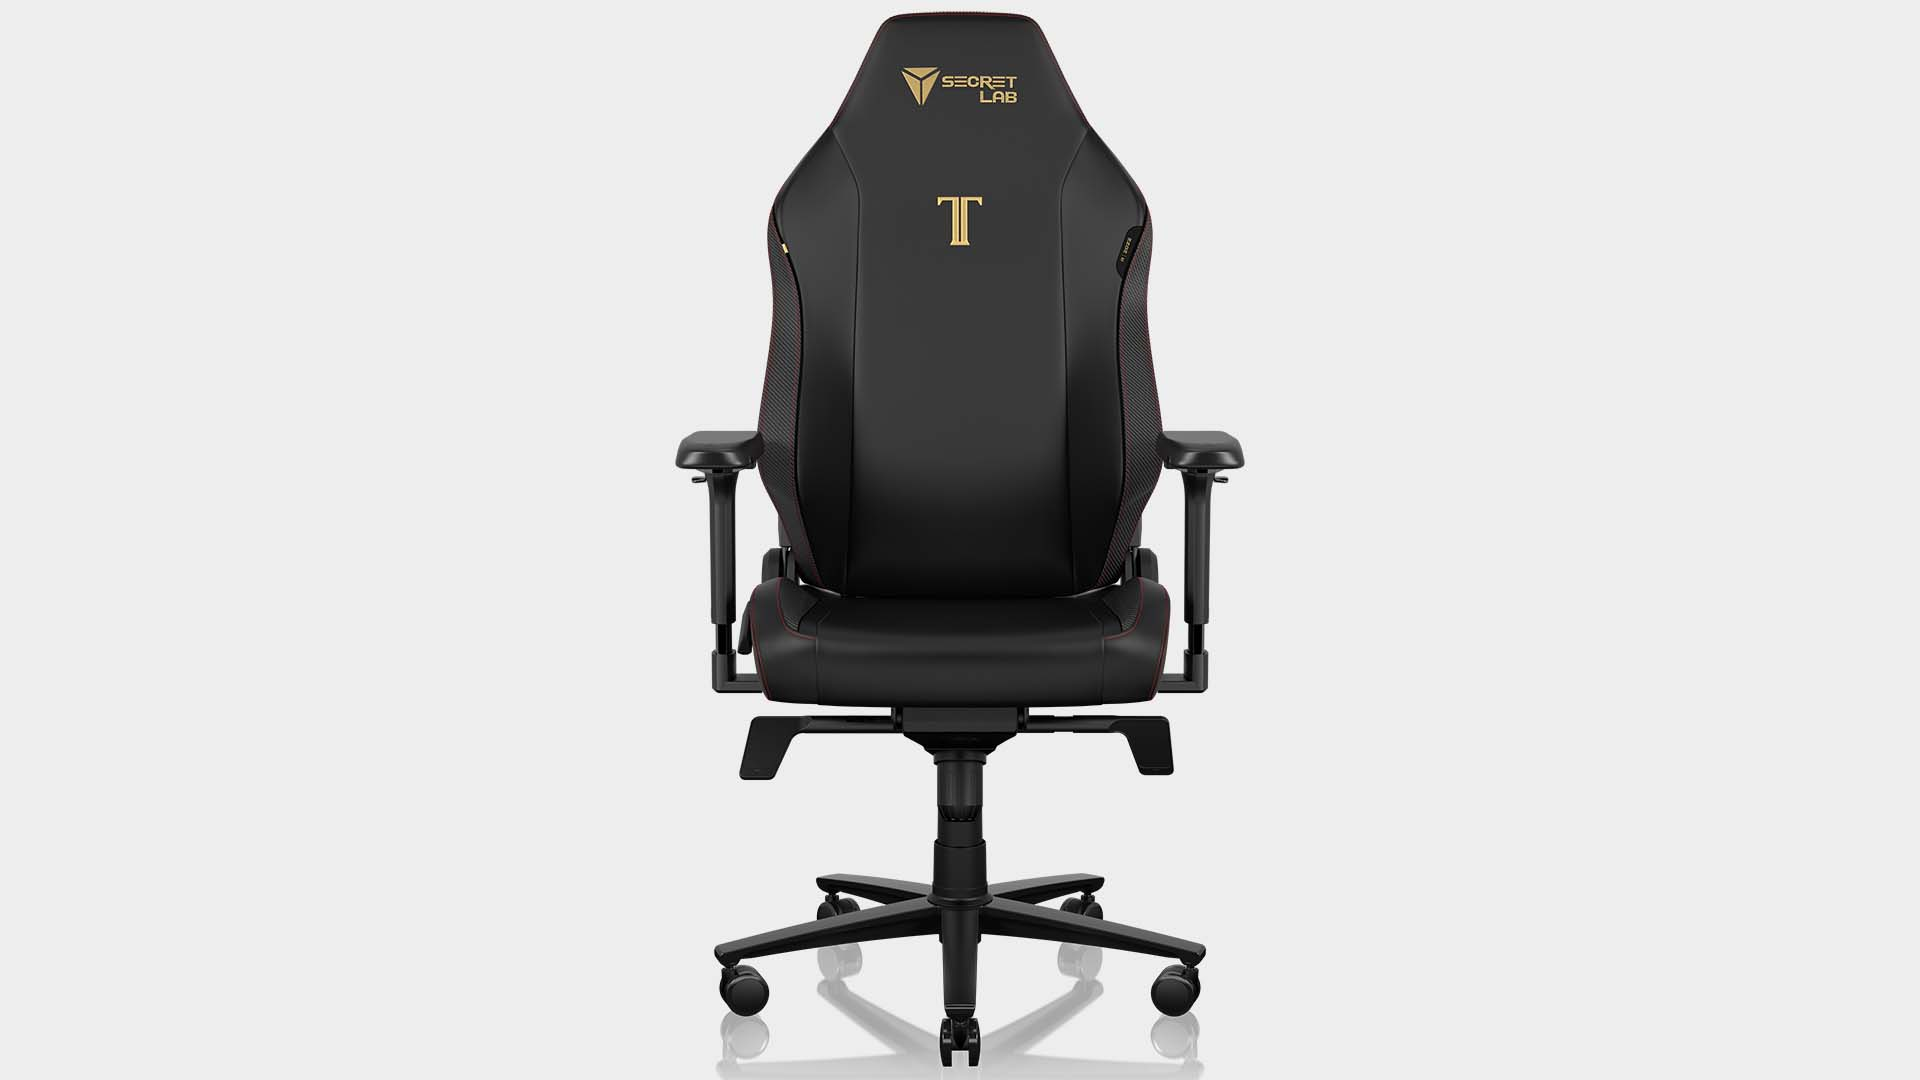 Secretlab Titan Evo 2022 gaming chair on a grey background at various 360° angles.